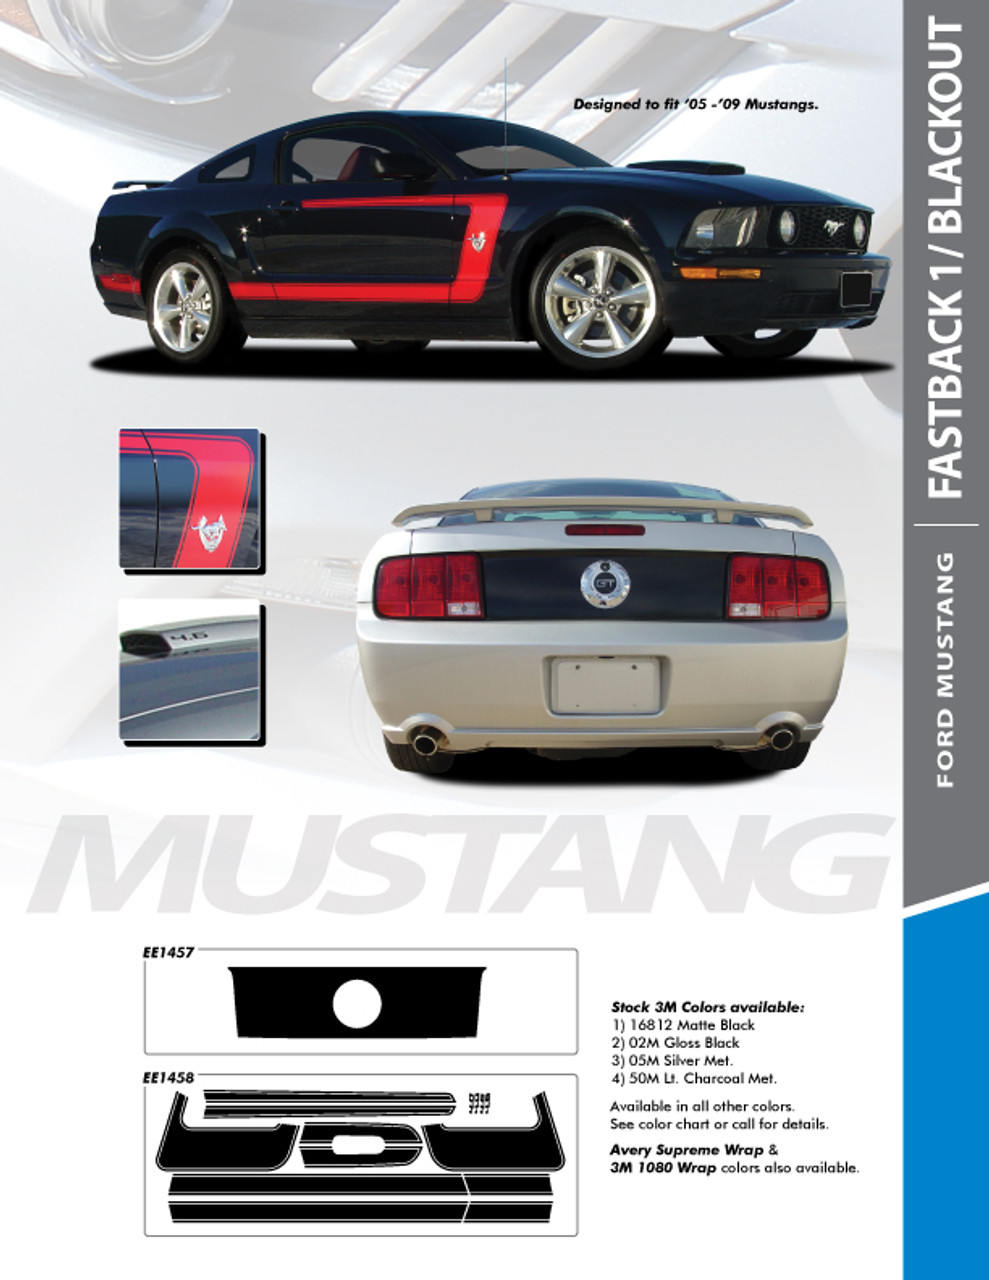 Descriptions and information concerning 1965 ford mustang gt premium convertible. Ford Mustang Boss Stripes Graphic Vinyl Decal Fastback One 2009 2008 2007 2006 2005